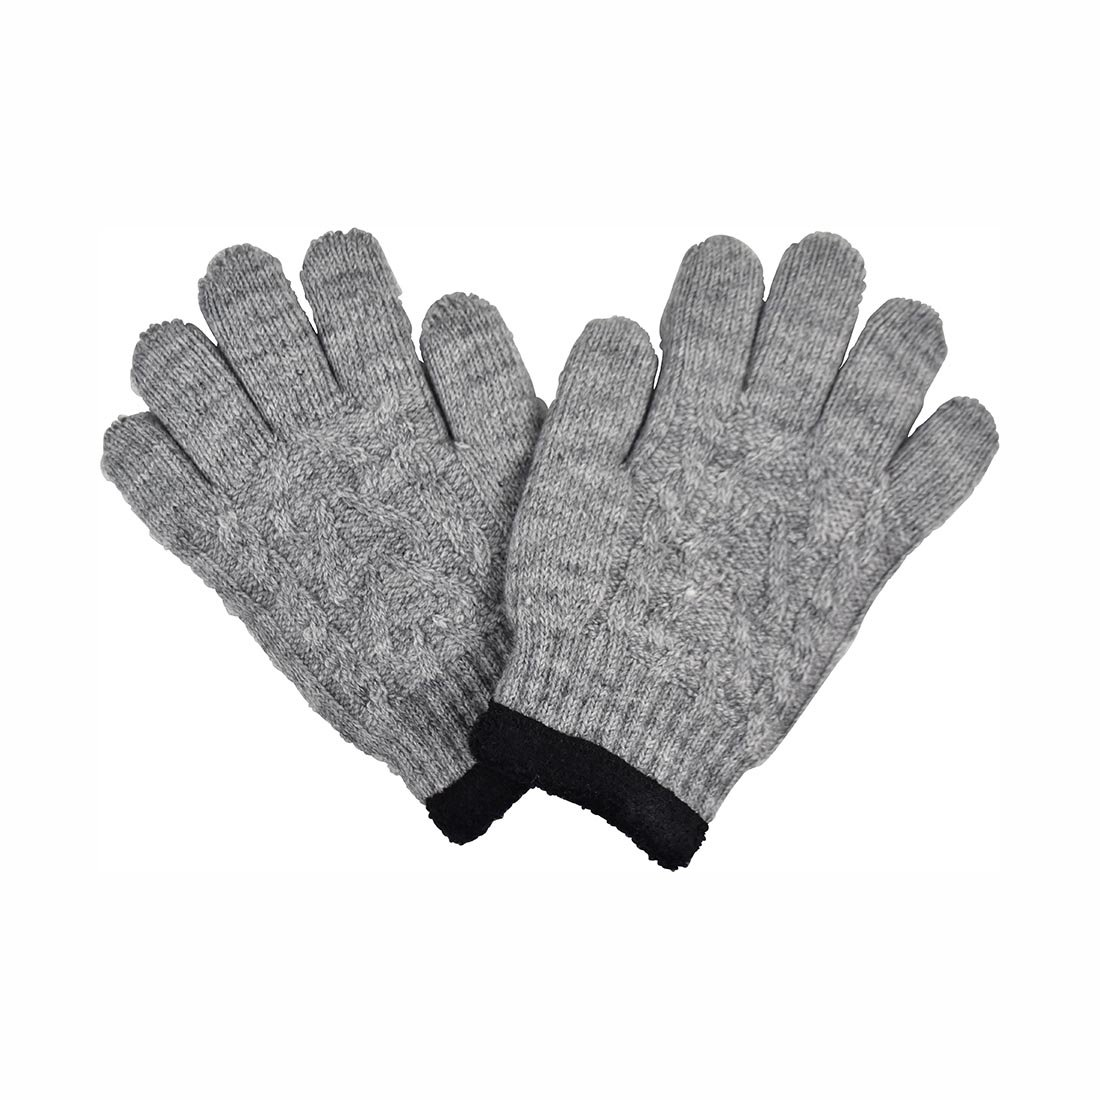 Small Waterproof Knit Glove - Black MTGLS036BK